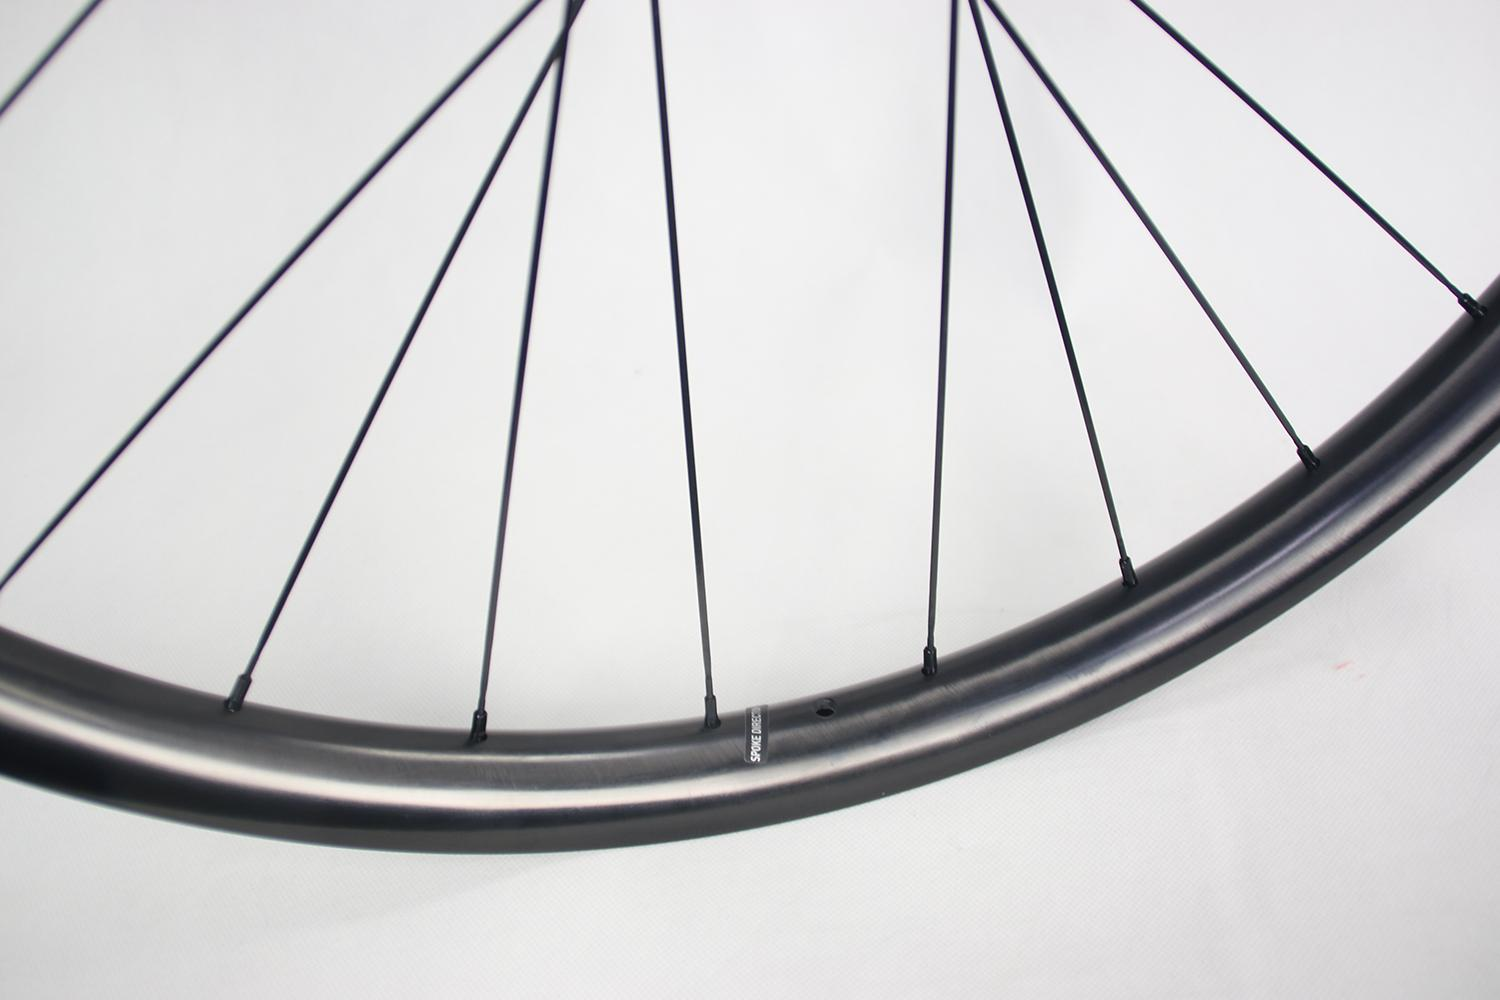 ud-paintless-finish-am930-carbon-wheel